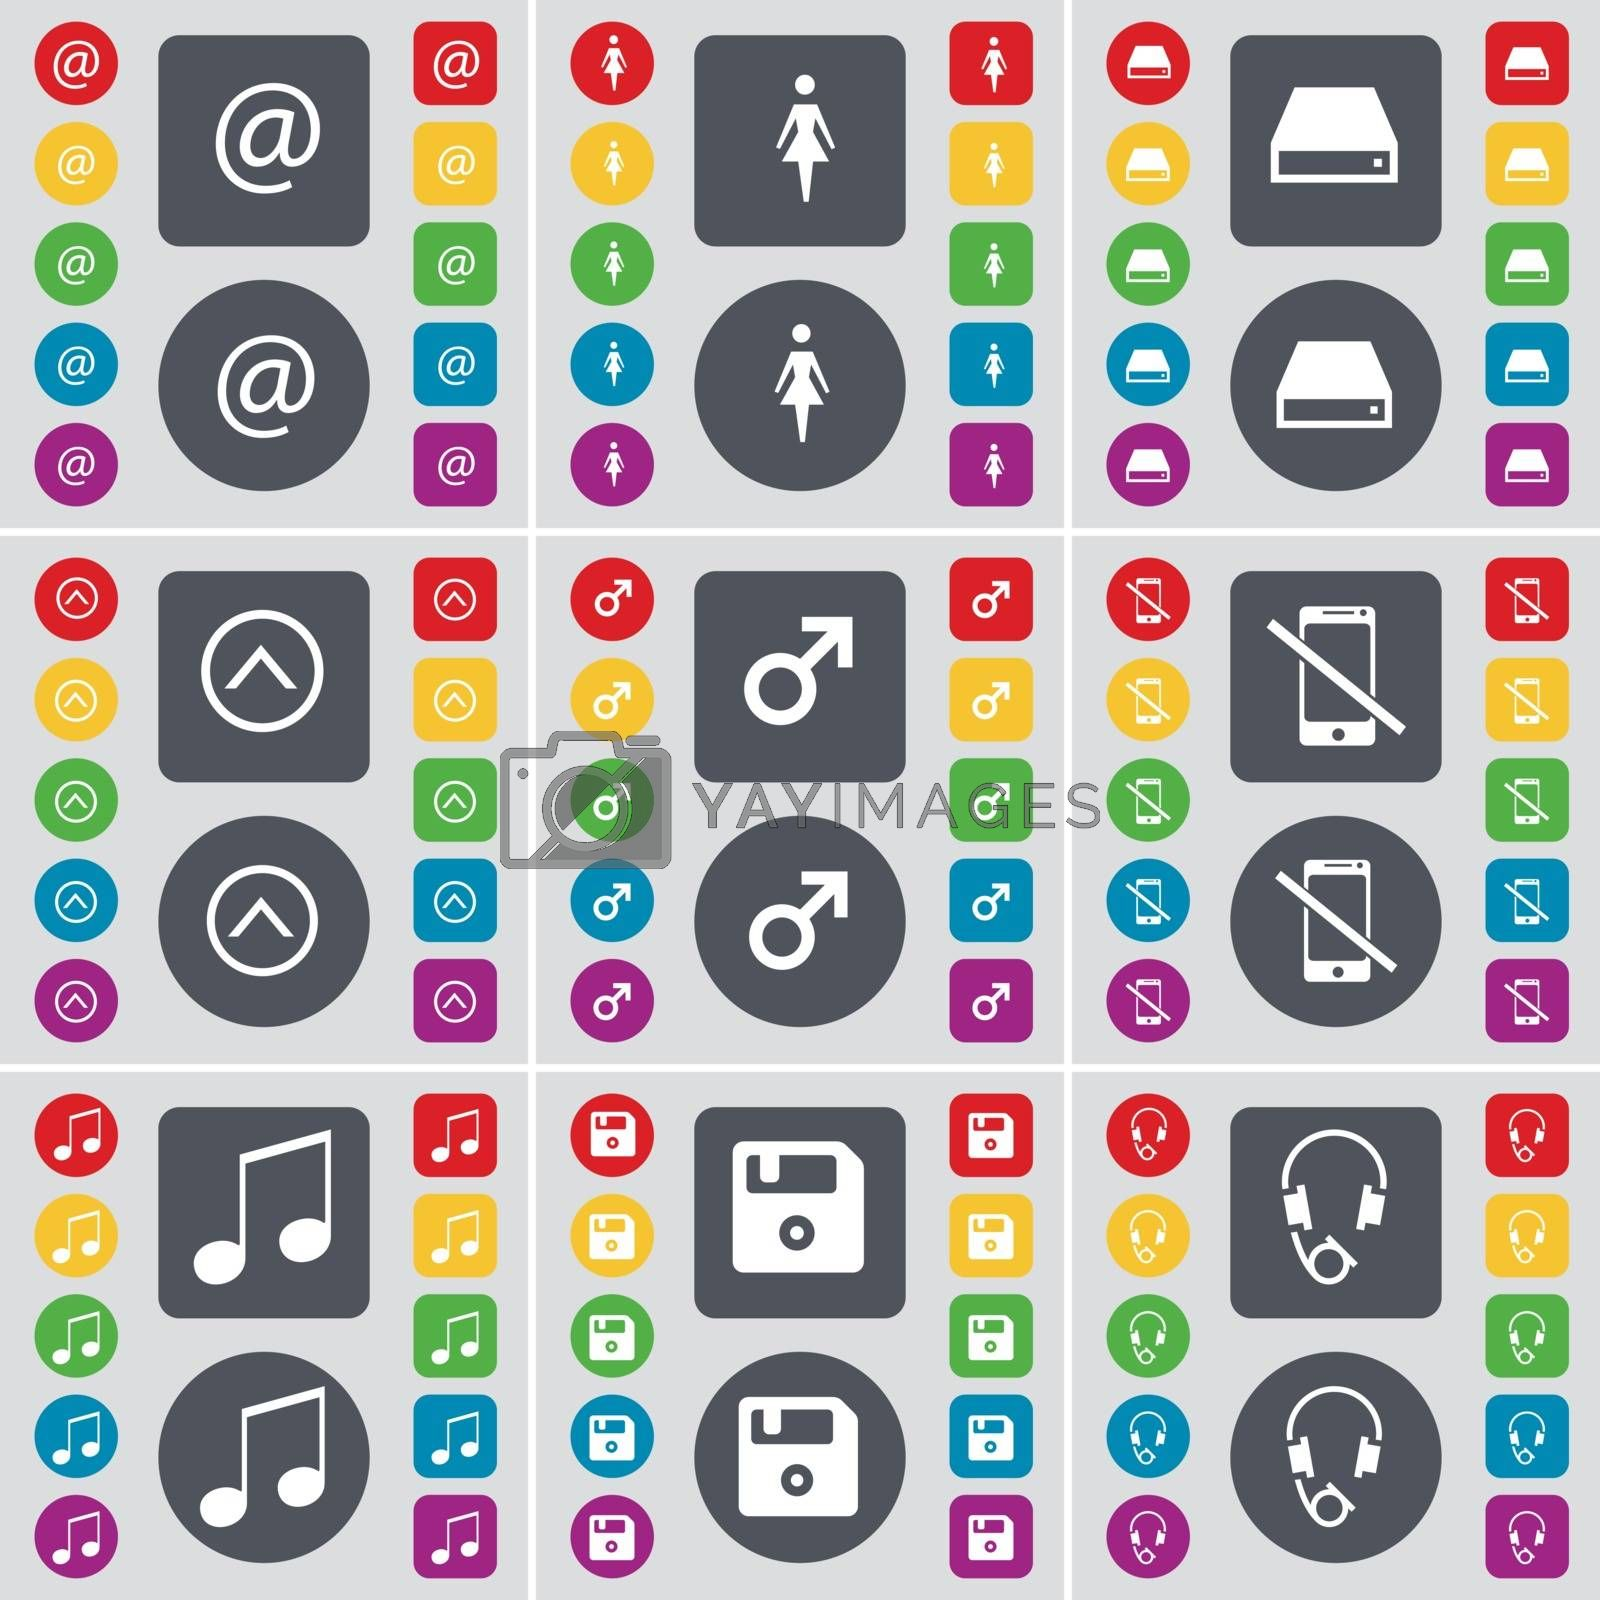 Royalty free image of Mail, Silhouette, Hard drive, Arrow up, Mars symbol, Smartphone, Note, Floppy, Headphones icon symbol. A large set of flat, colored buttons for your design. Vector by serhii_lohvyniuk